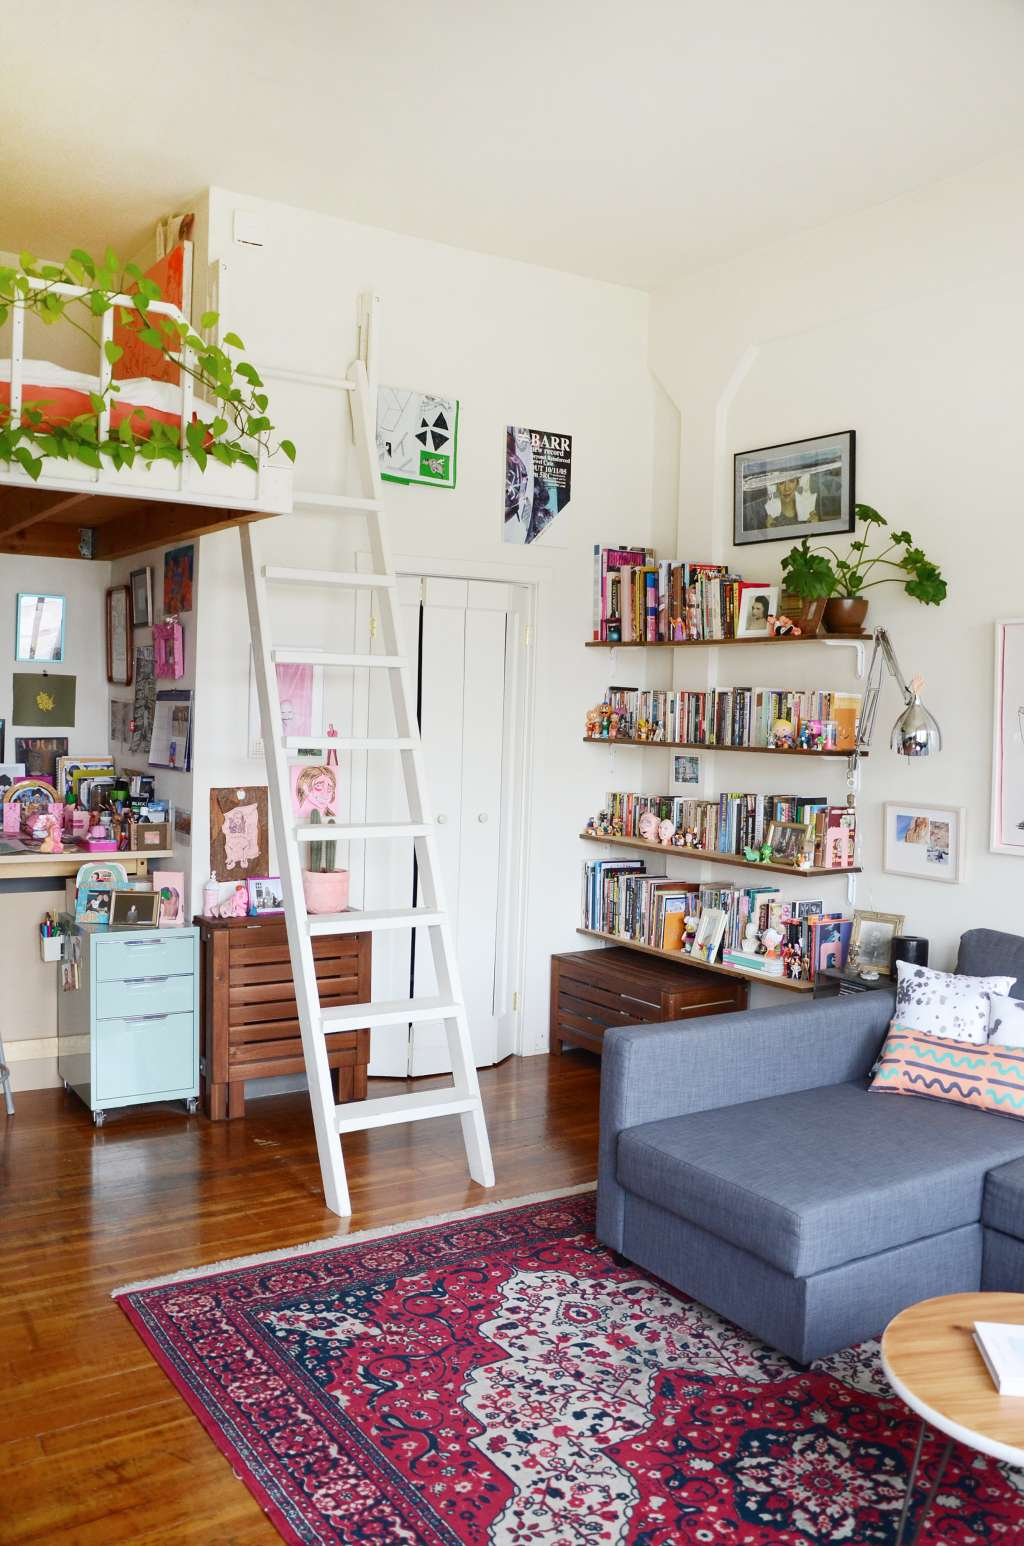 Small Space Ideas from a 300 Square Foot Studio